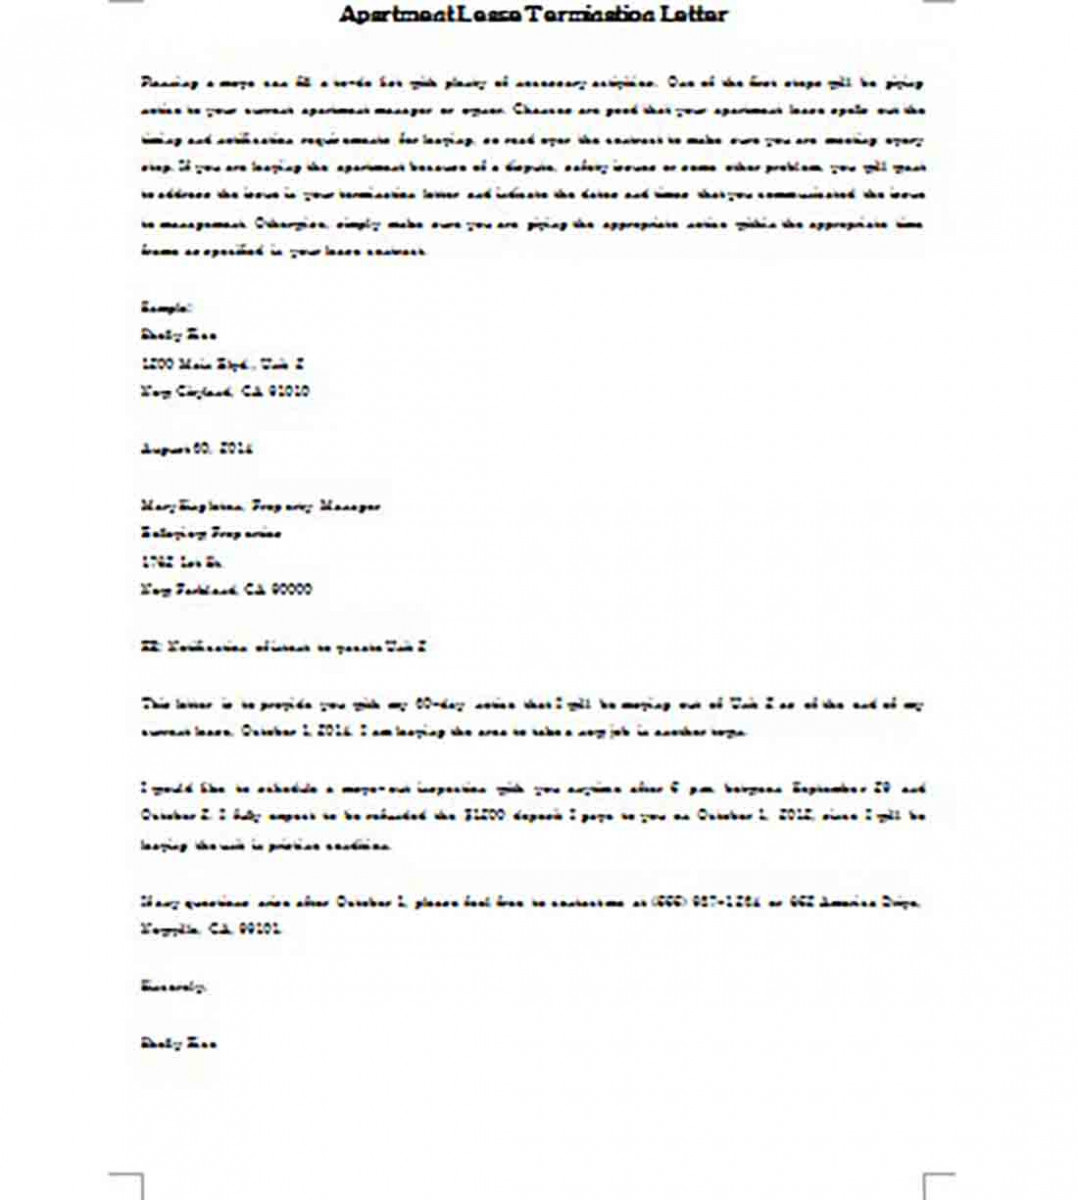 Sample Lease Termination Letter Apartment templates Word Doc